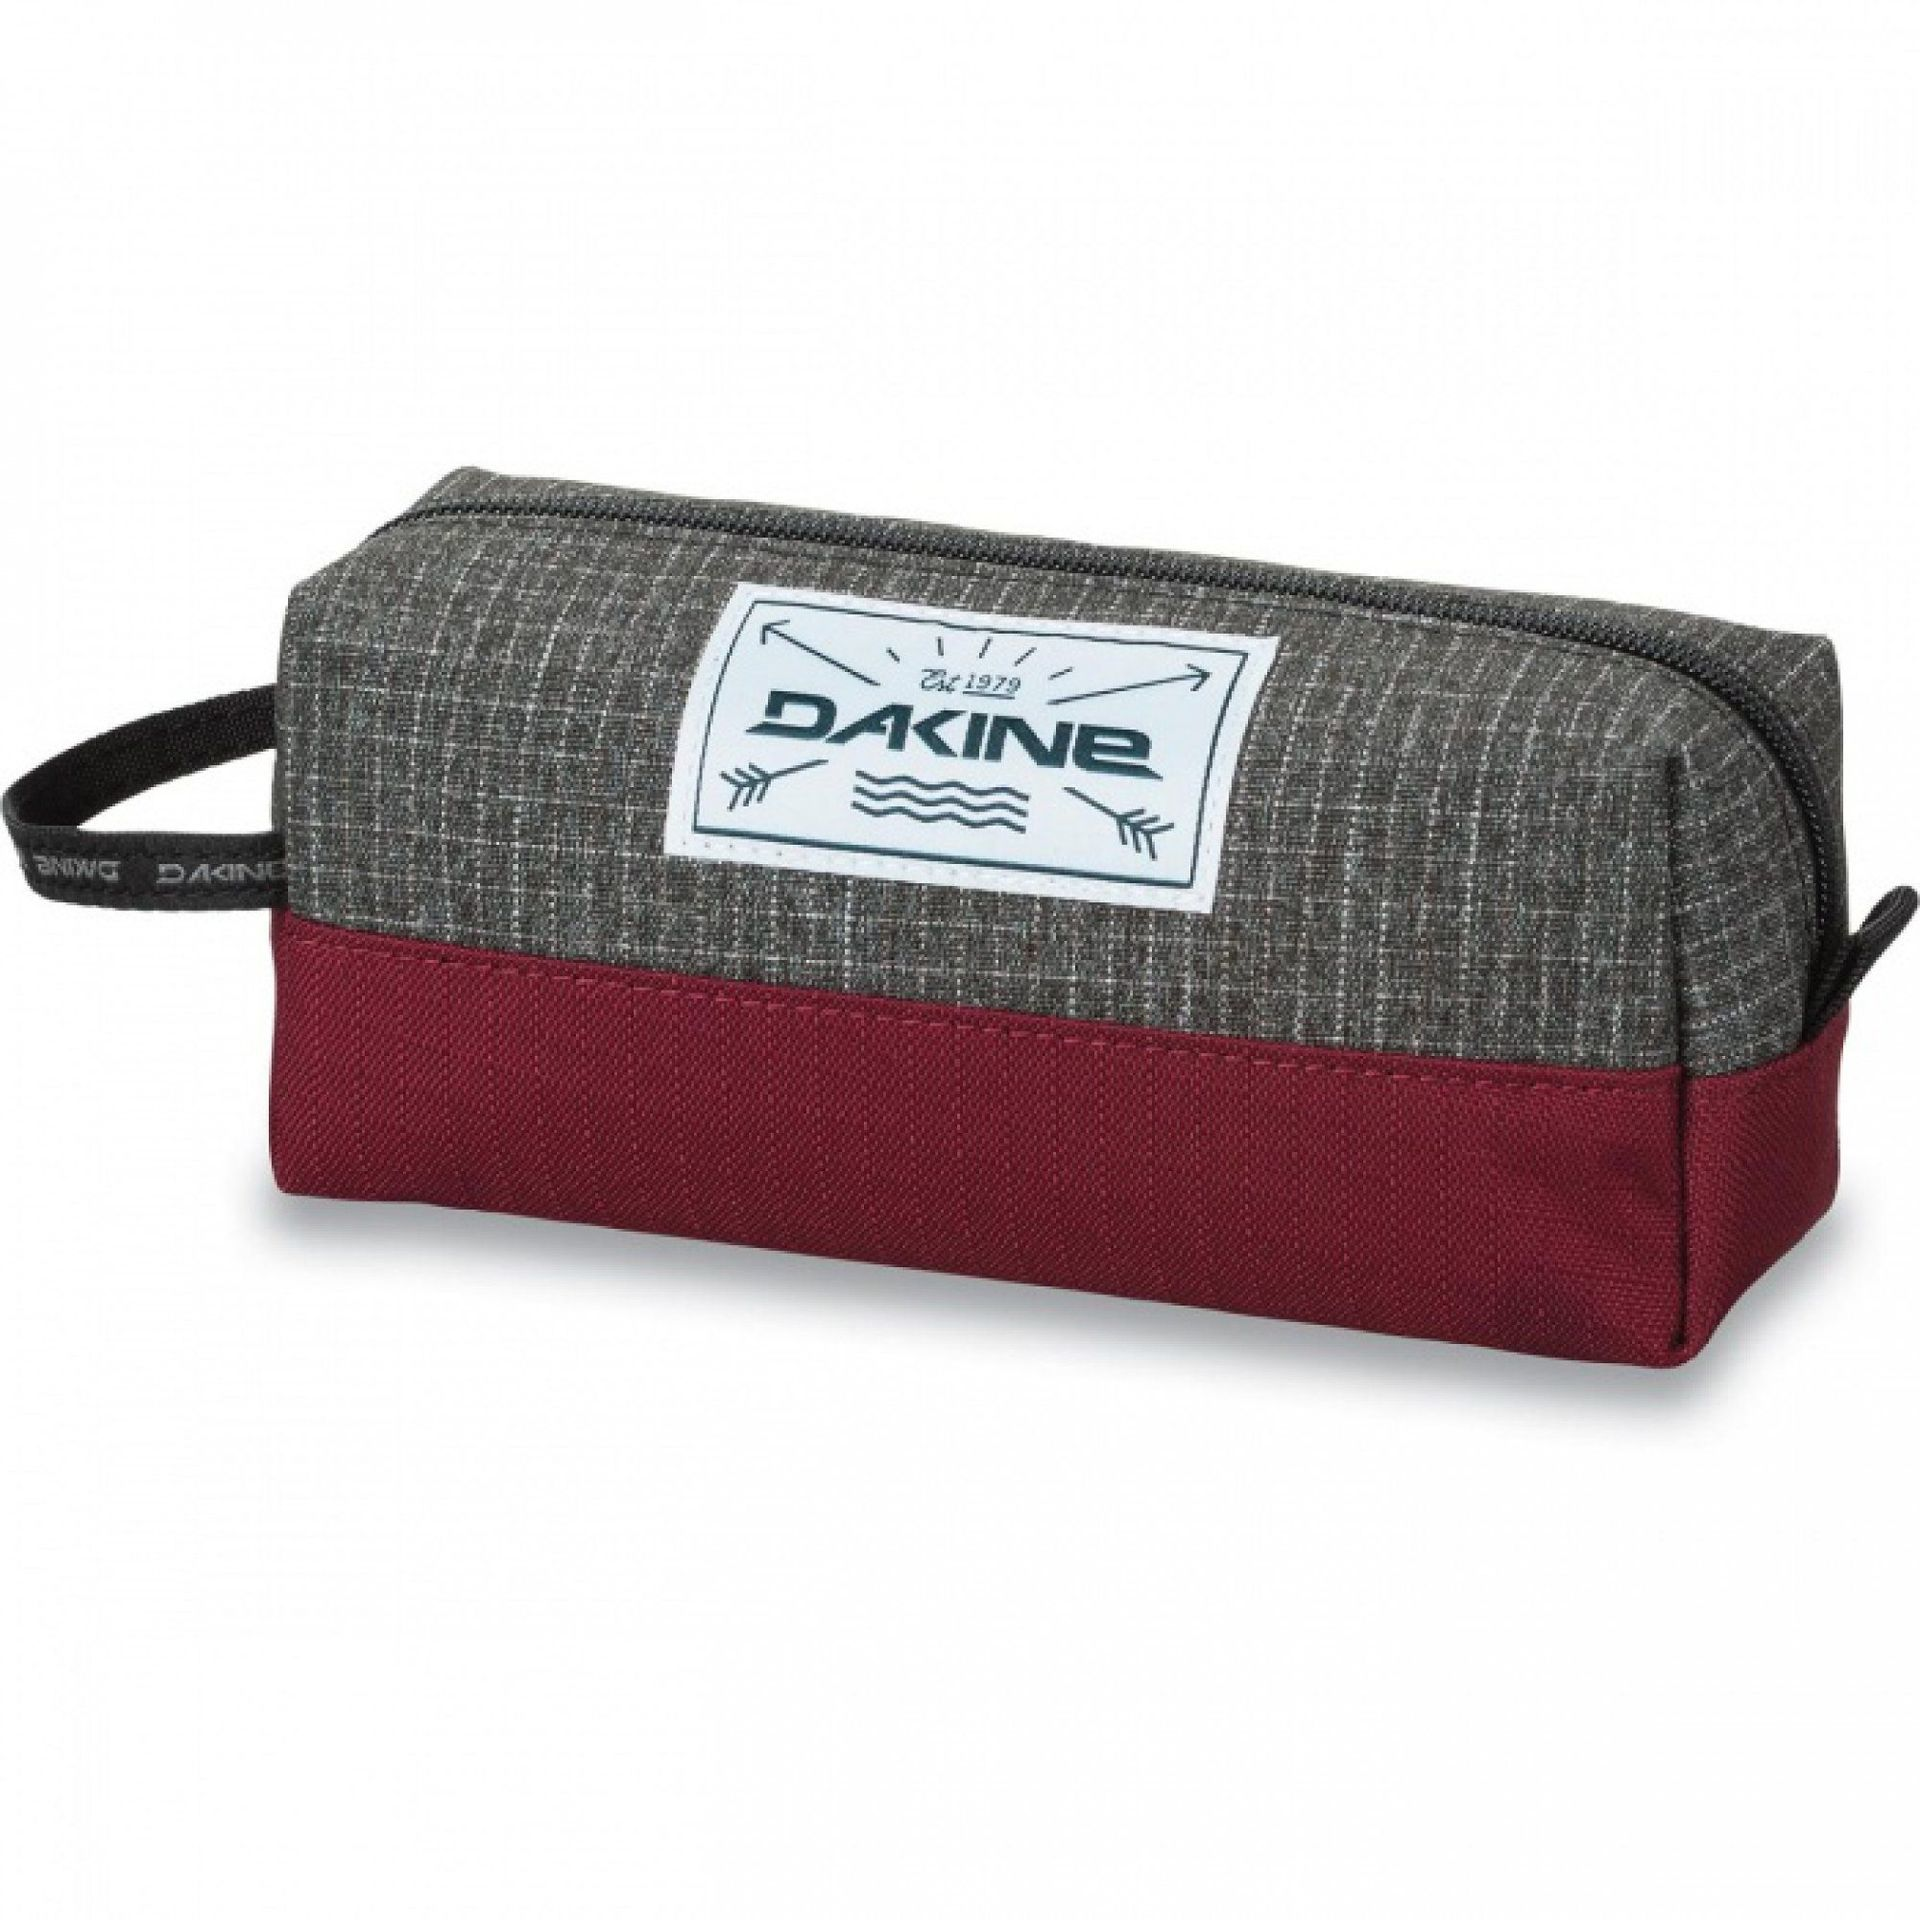 PIÓRNIK DAKINE ACCESSORY CASE WILLAMETTE